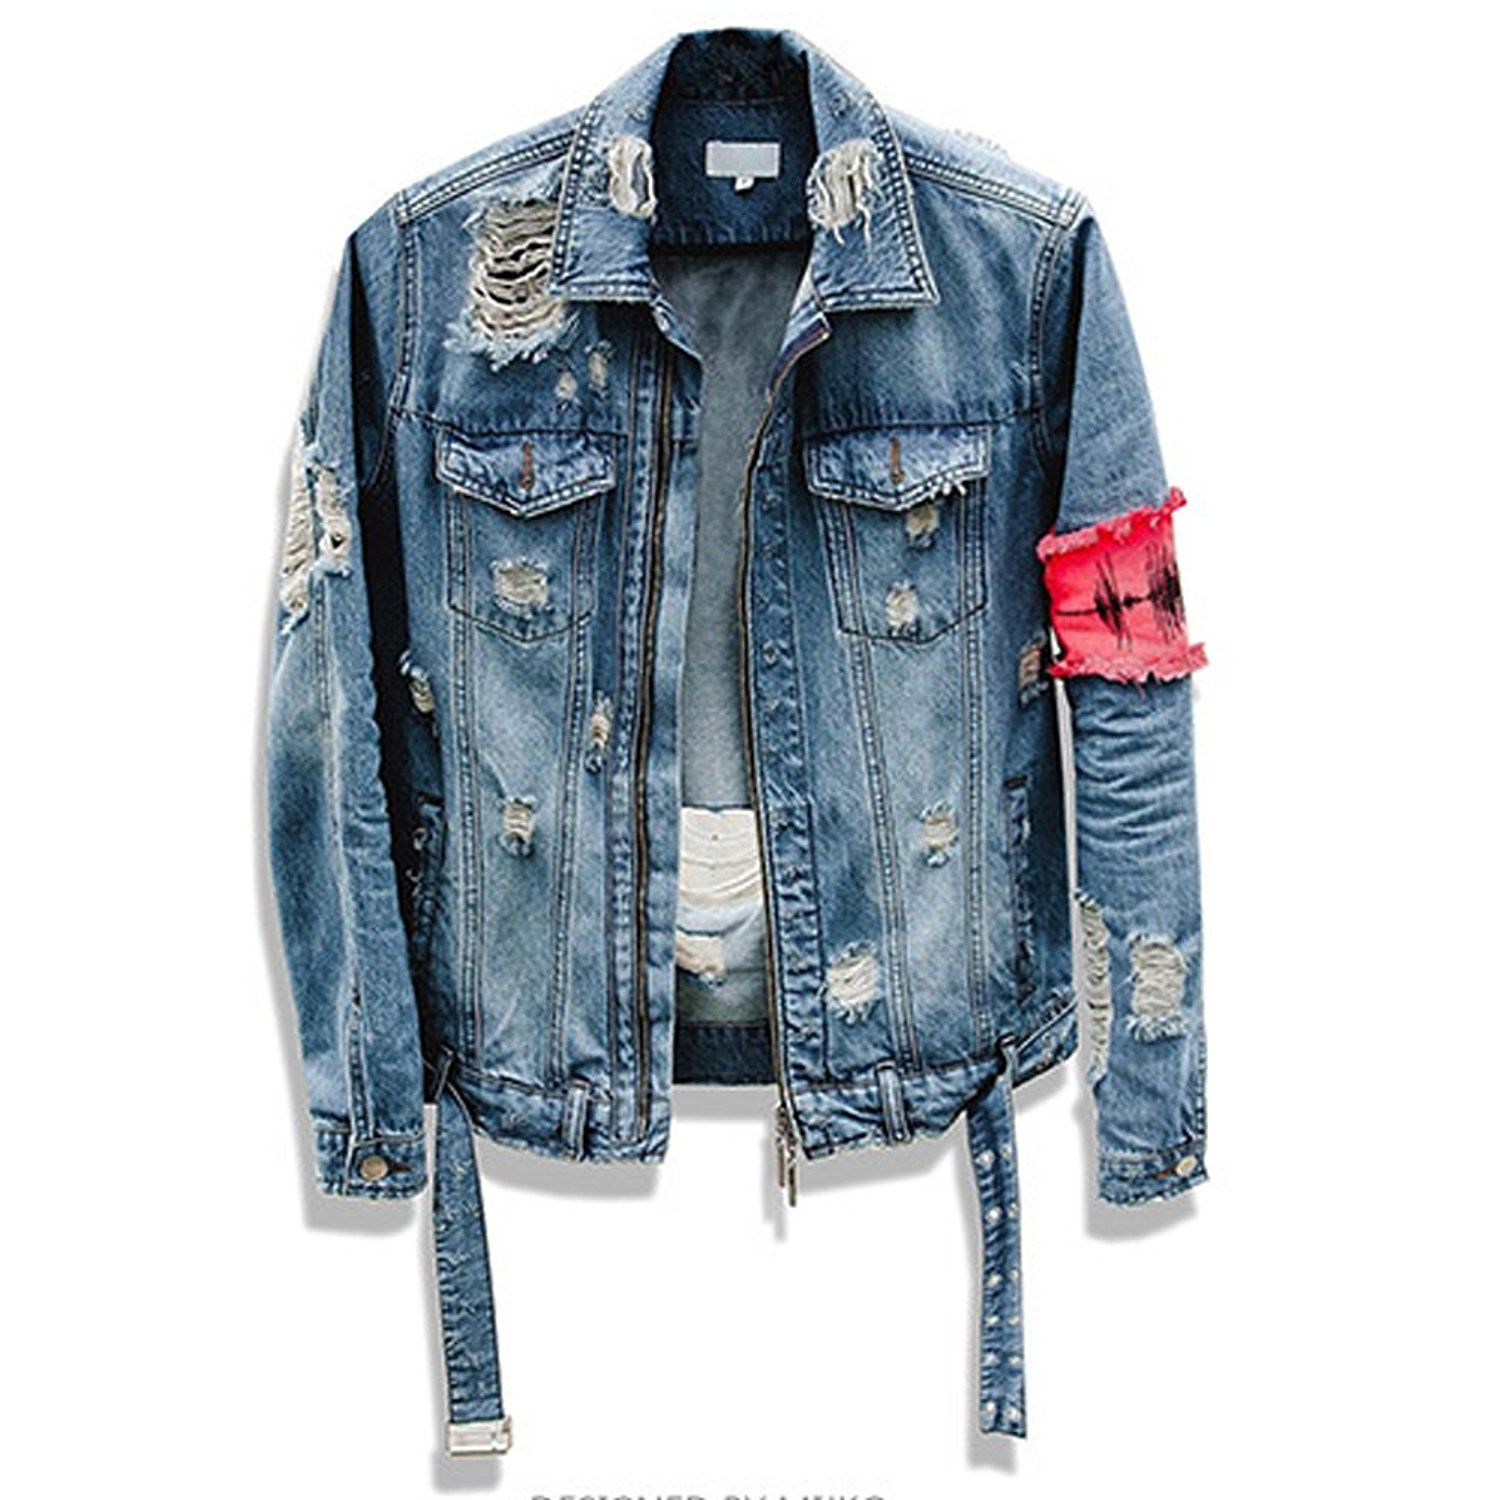 7fd7974a909 Frinkey Men s Ripped Denim Trucker Jacket Distressed Rugged Patchwork Jeans  Jackets Biker Jacket For Man at Amazon Men s Clothing store